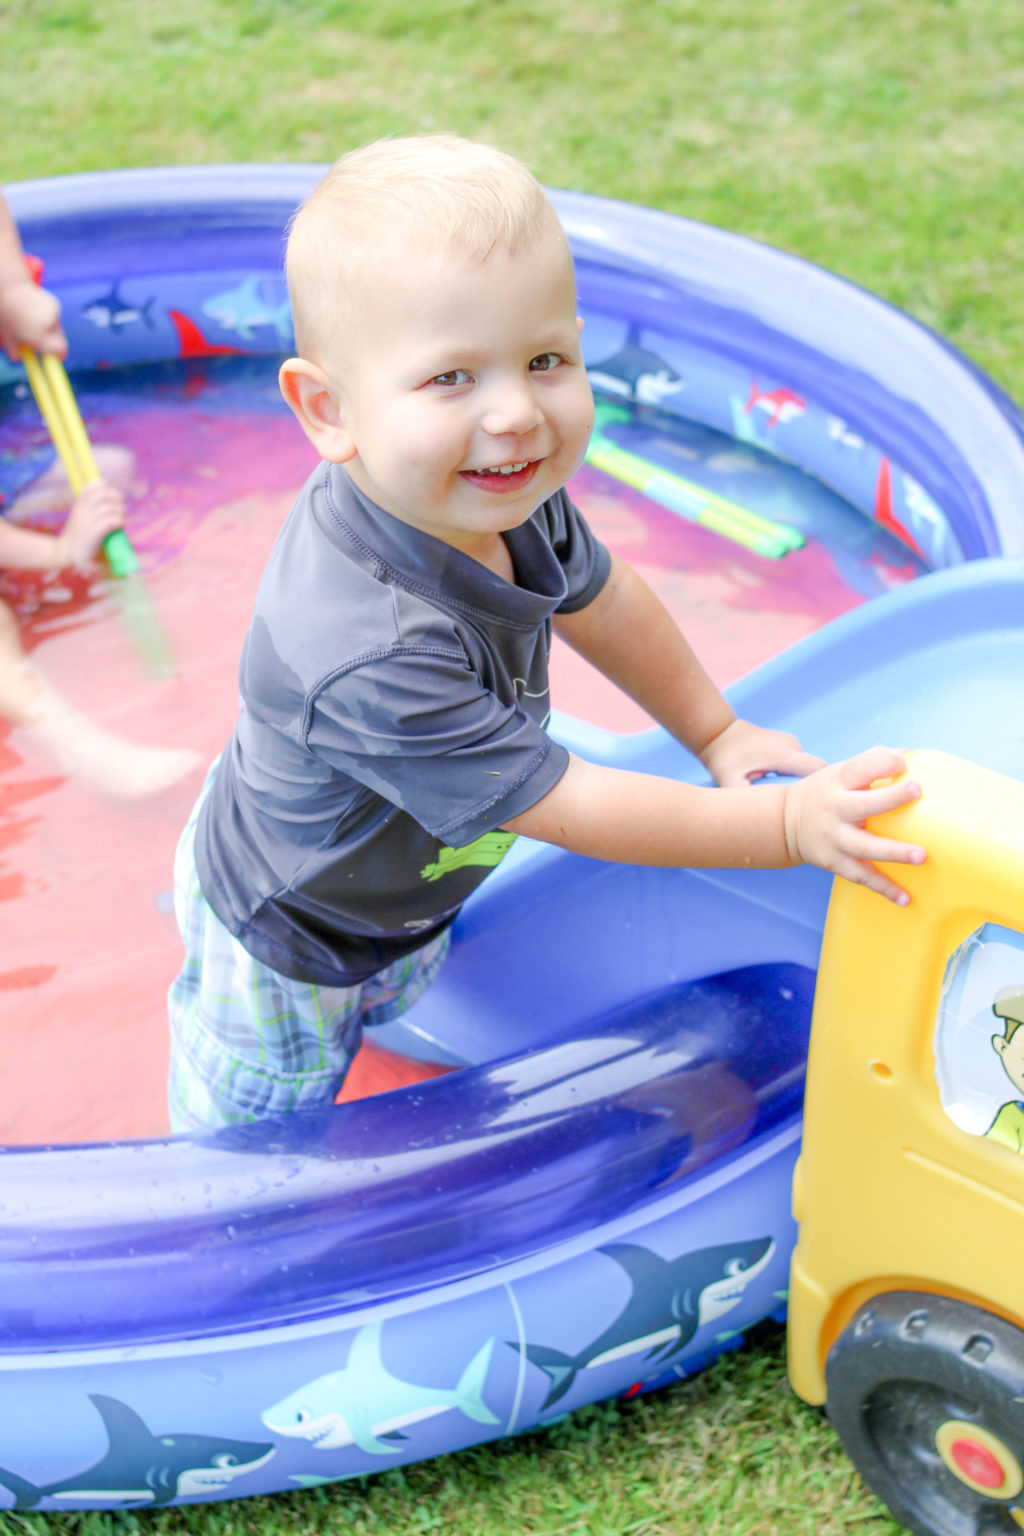 Blond toddler boy standing in wading pool while holding onto the side of a small slide and smiling at the camera